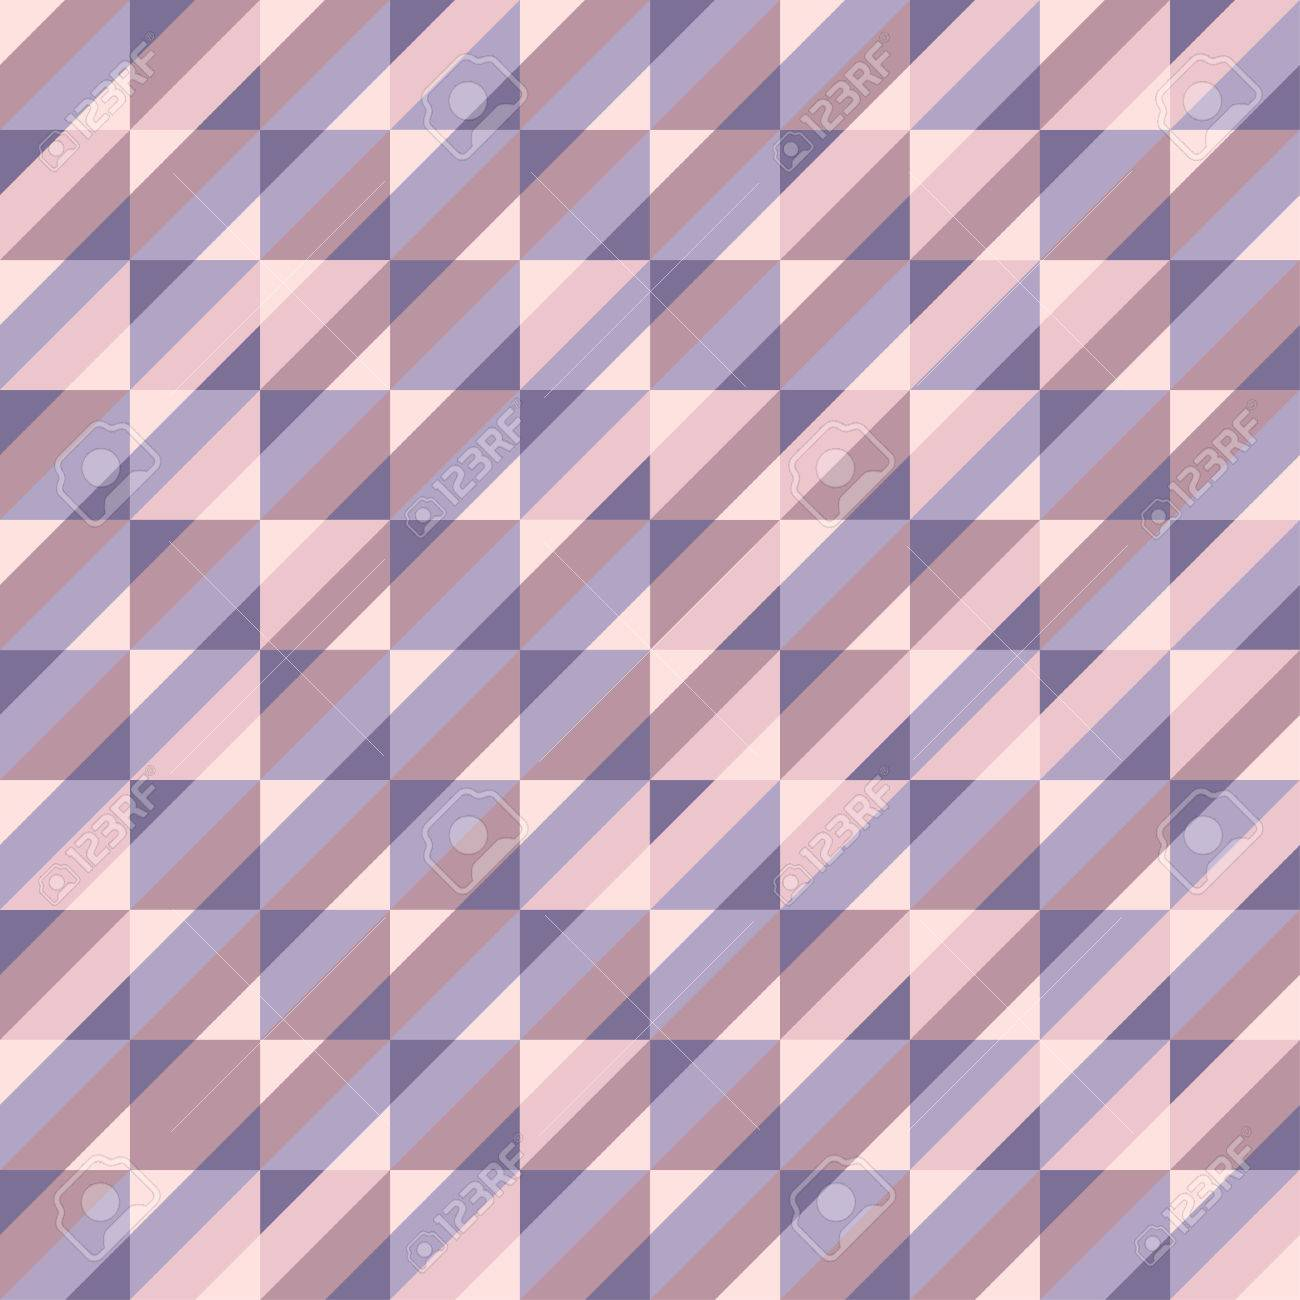 cool sqare pattern background. repeating geometric shapes. abstract